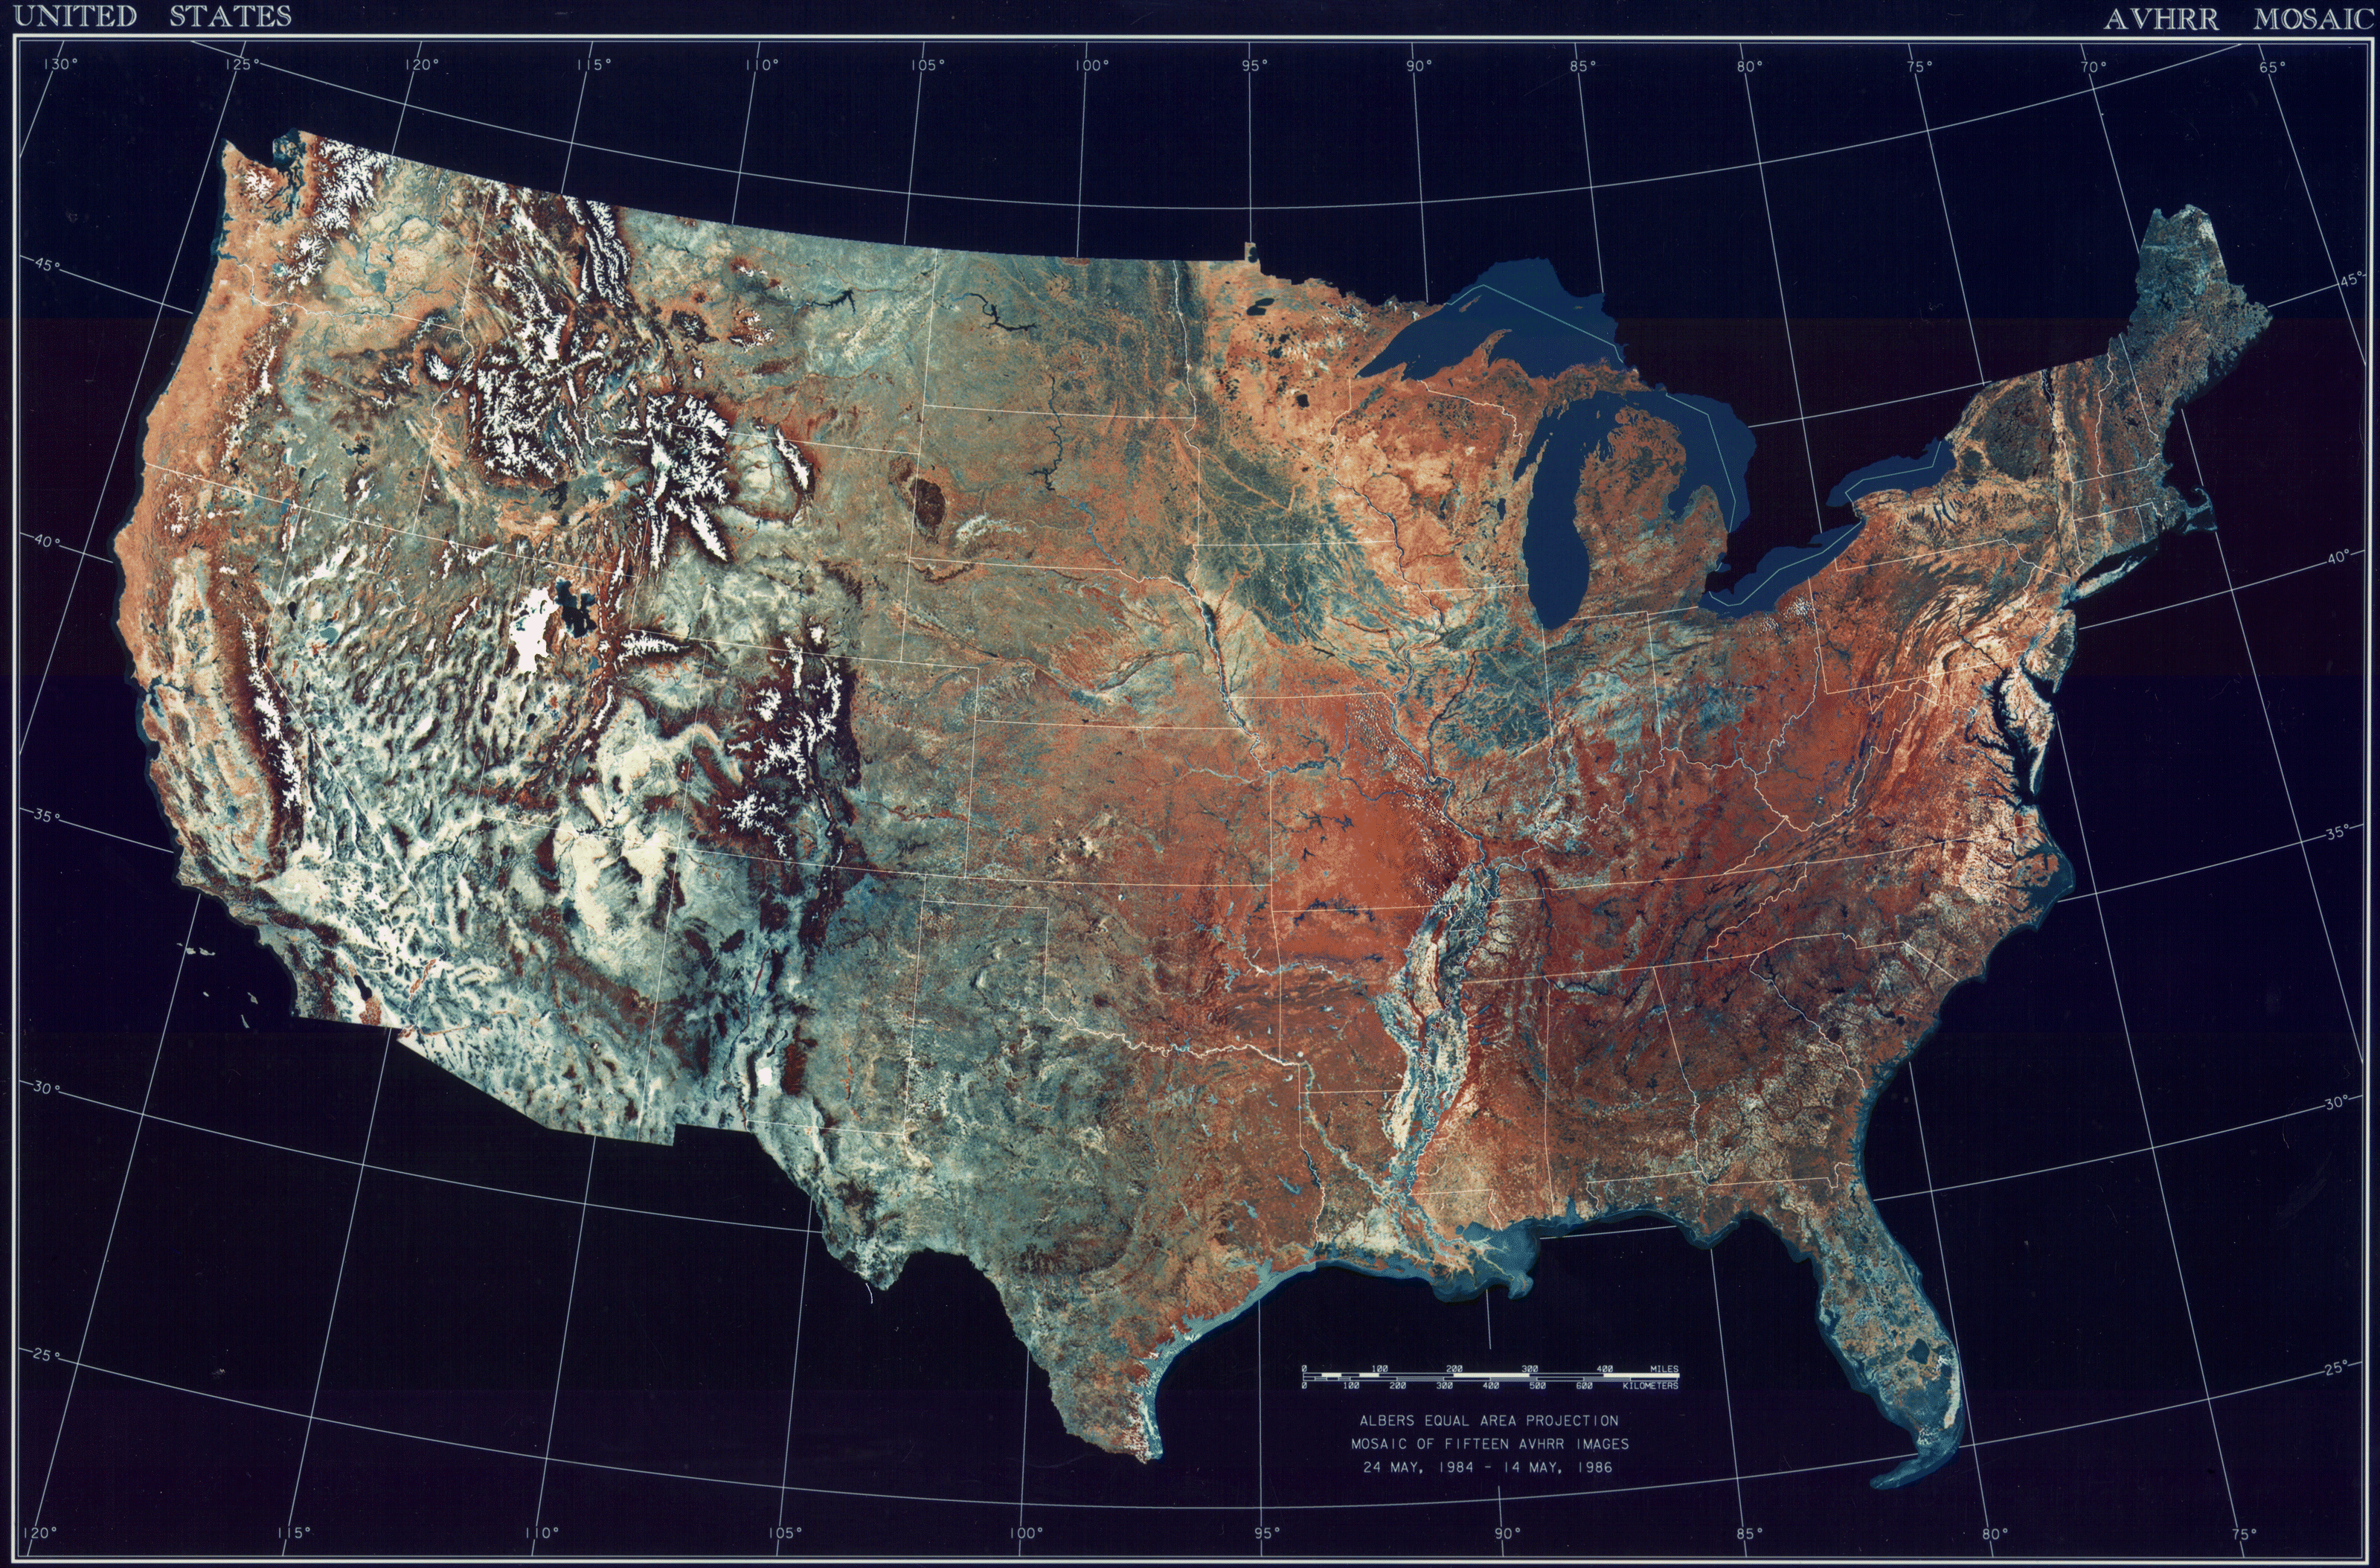 D Elevation Map Of Usa - 3d topographical map of us